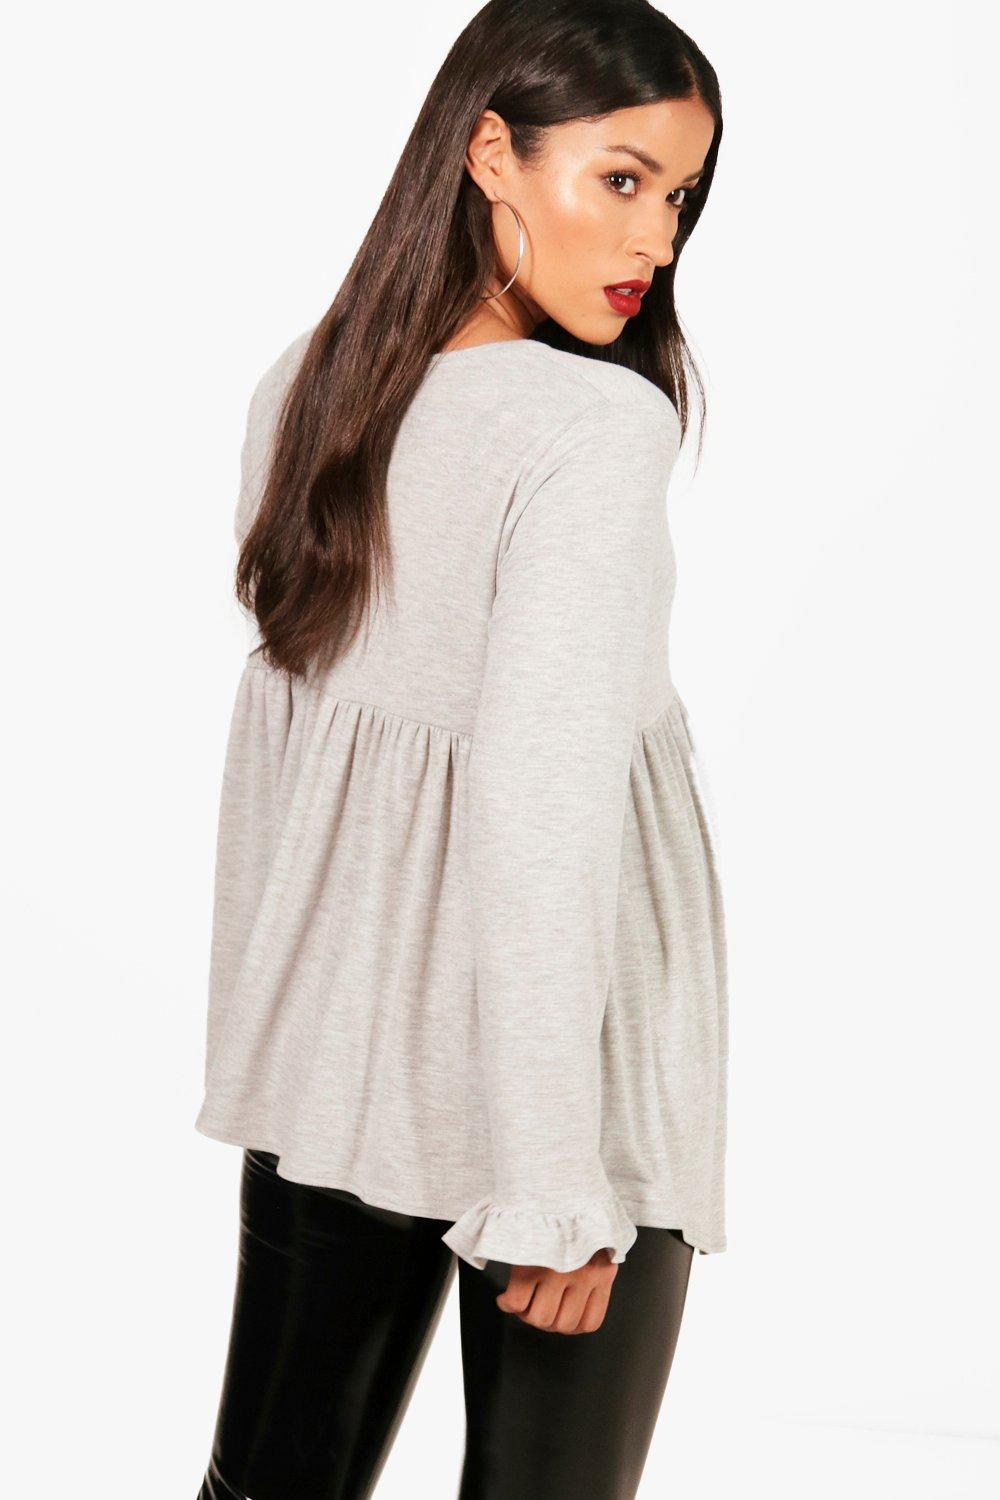 Top Ruffle grey Maternity Long Smock Sleeve a0wBCIq